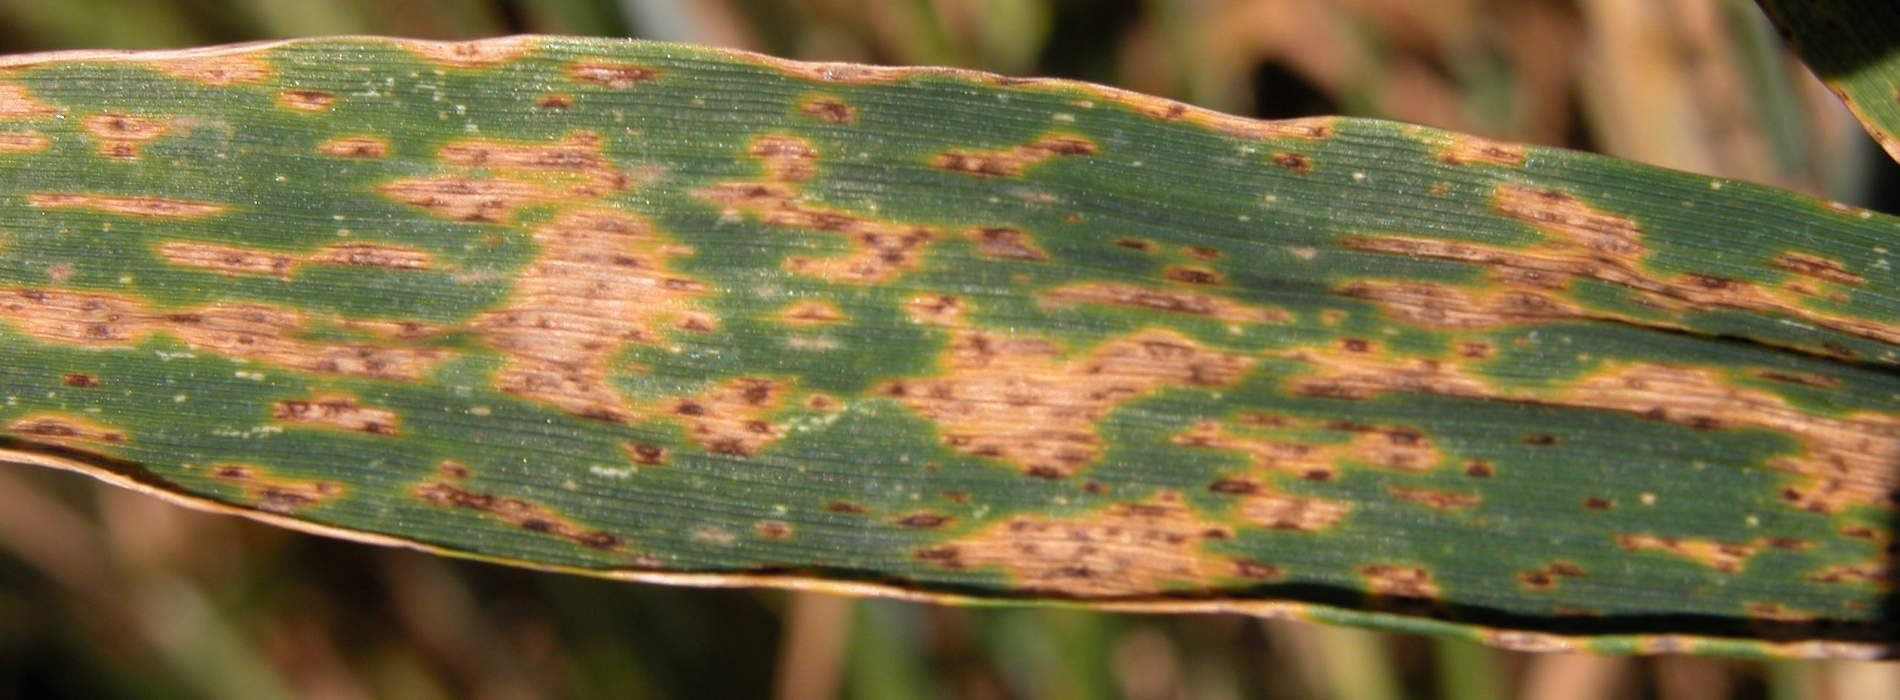 Septoria hits Copperbelt wheat farmers